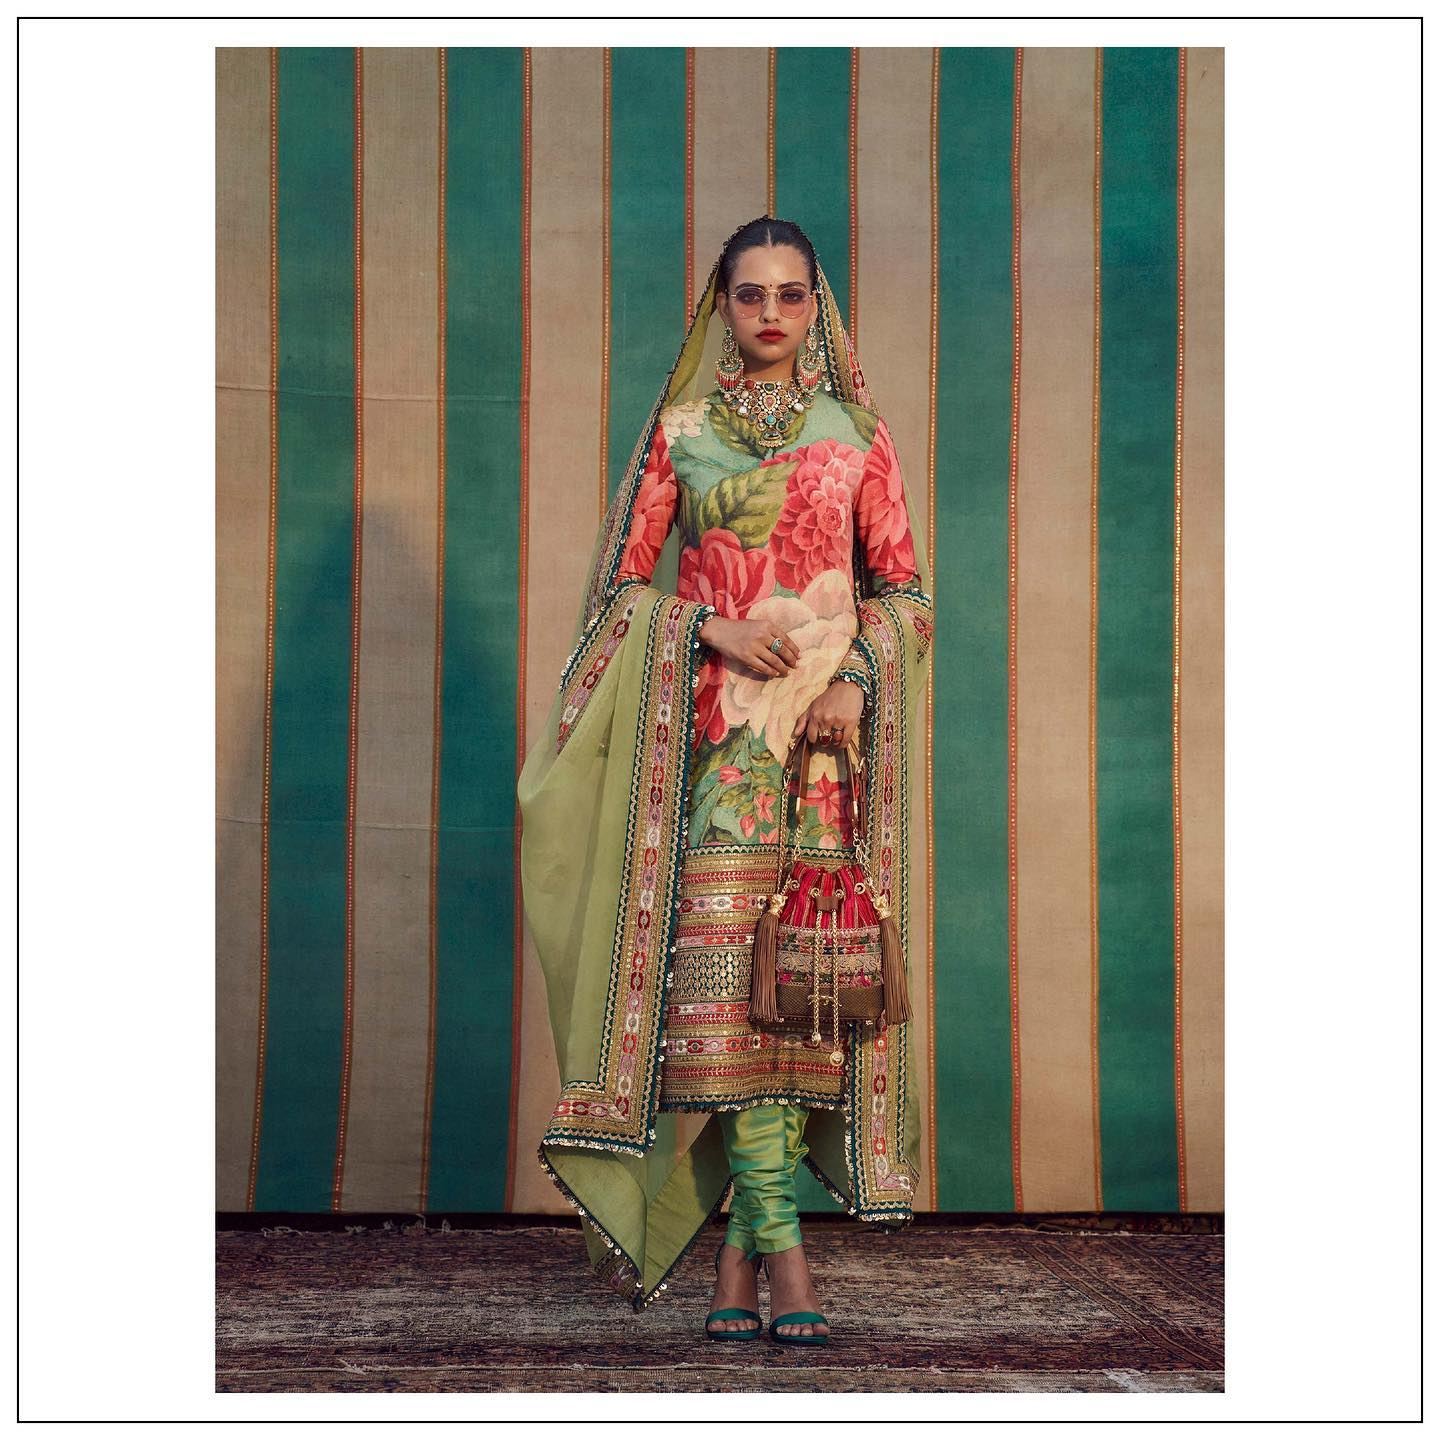 Sabyasachi floral kurti. The Sabyasachi 2021 Collection.  Womenswear jewellery Sabyasachi jewelry and accessories Sabyasachi accessories..  For all product related queries please email at customerservice@sabyasachi.com or contact retail stores directly. 2021-09-15